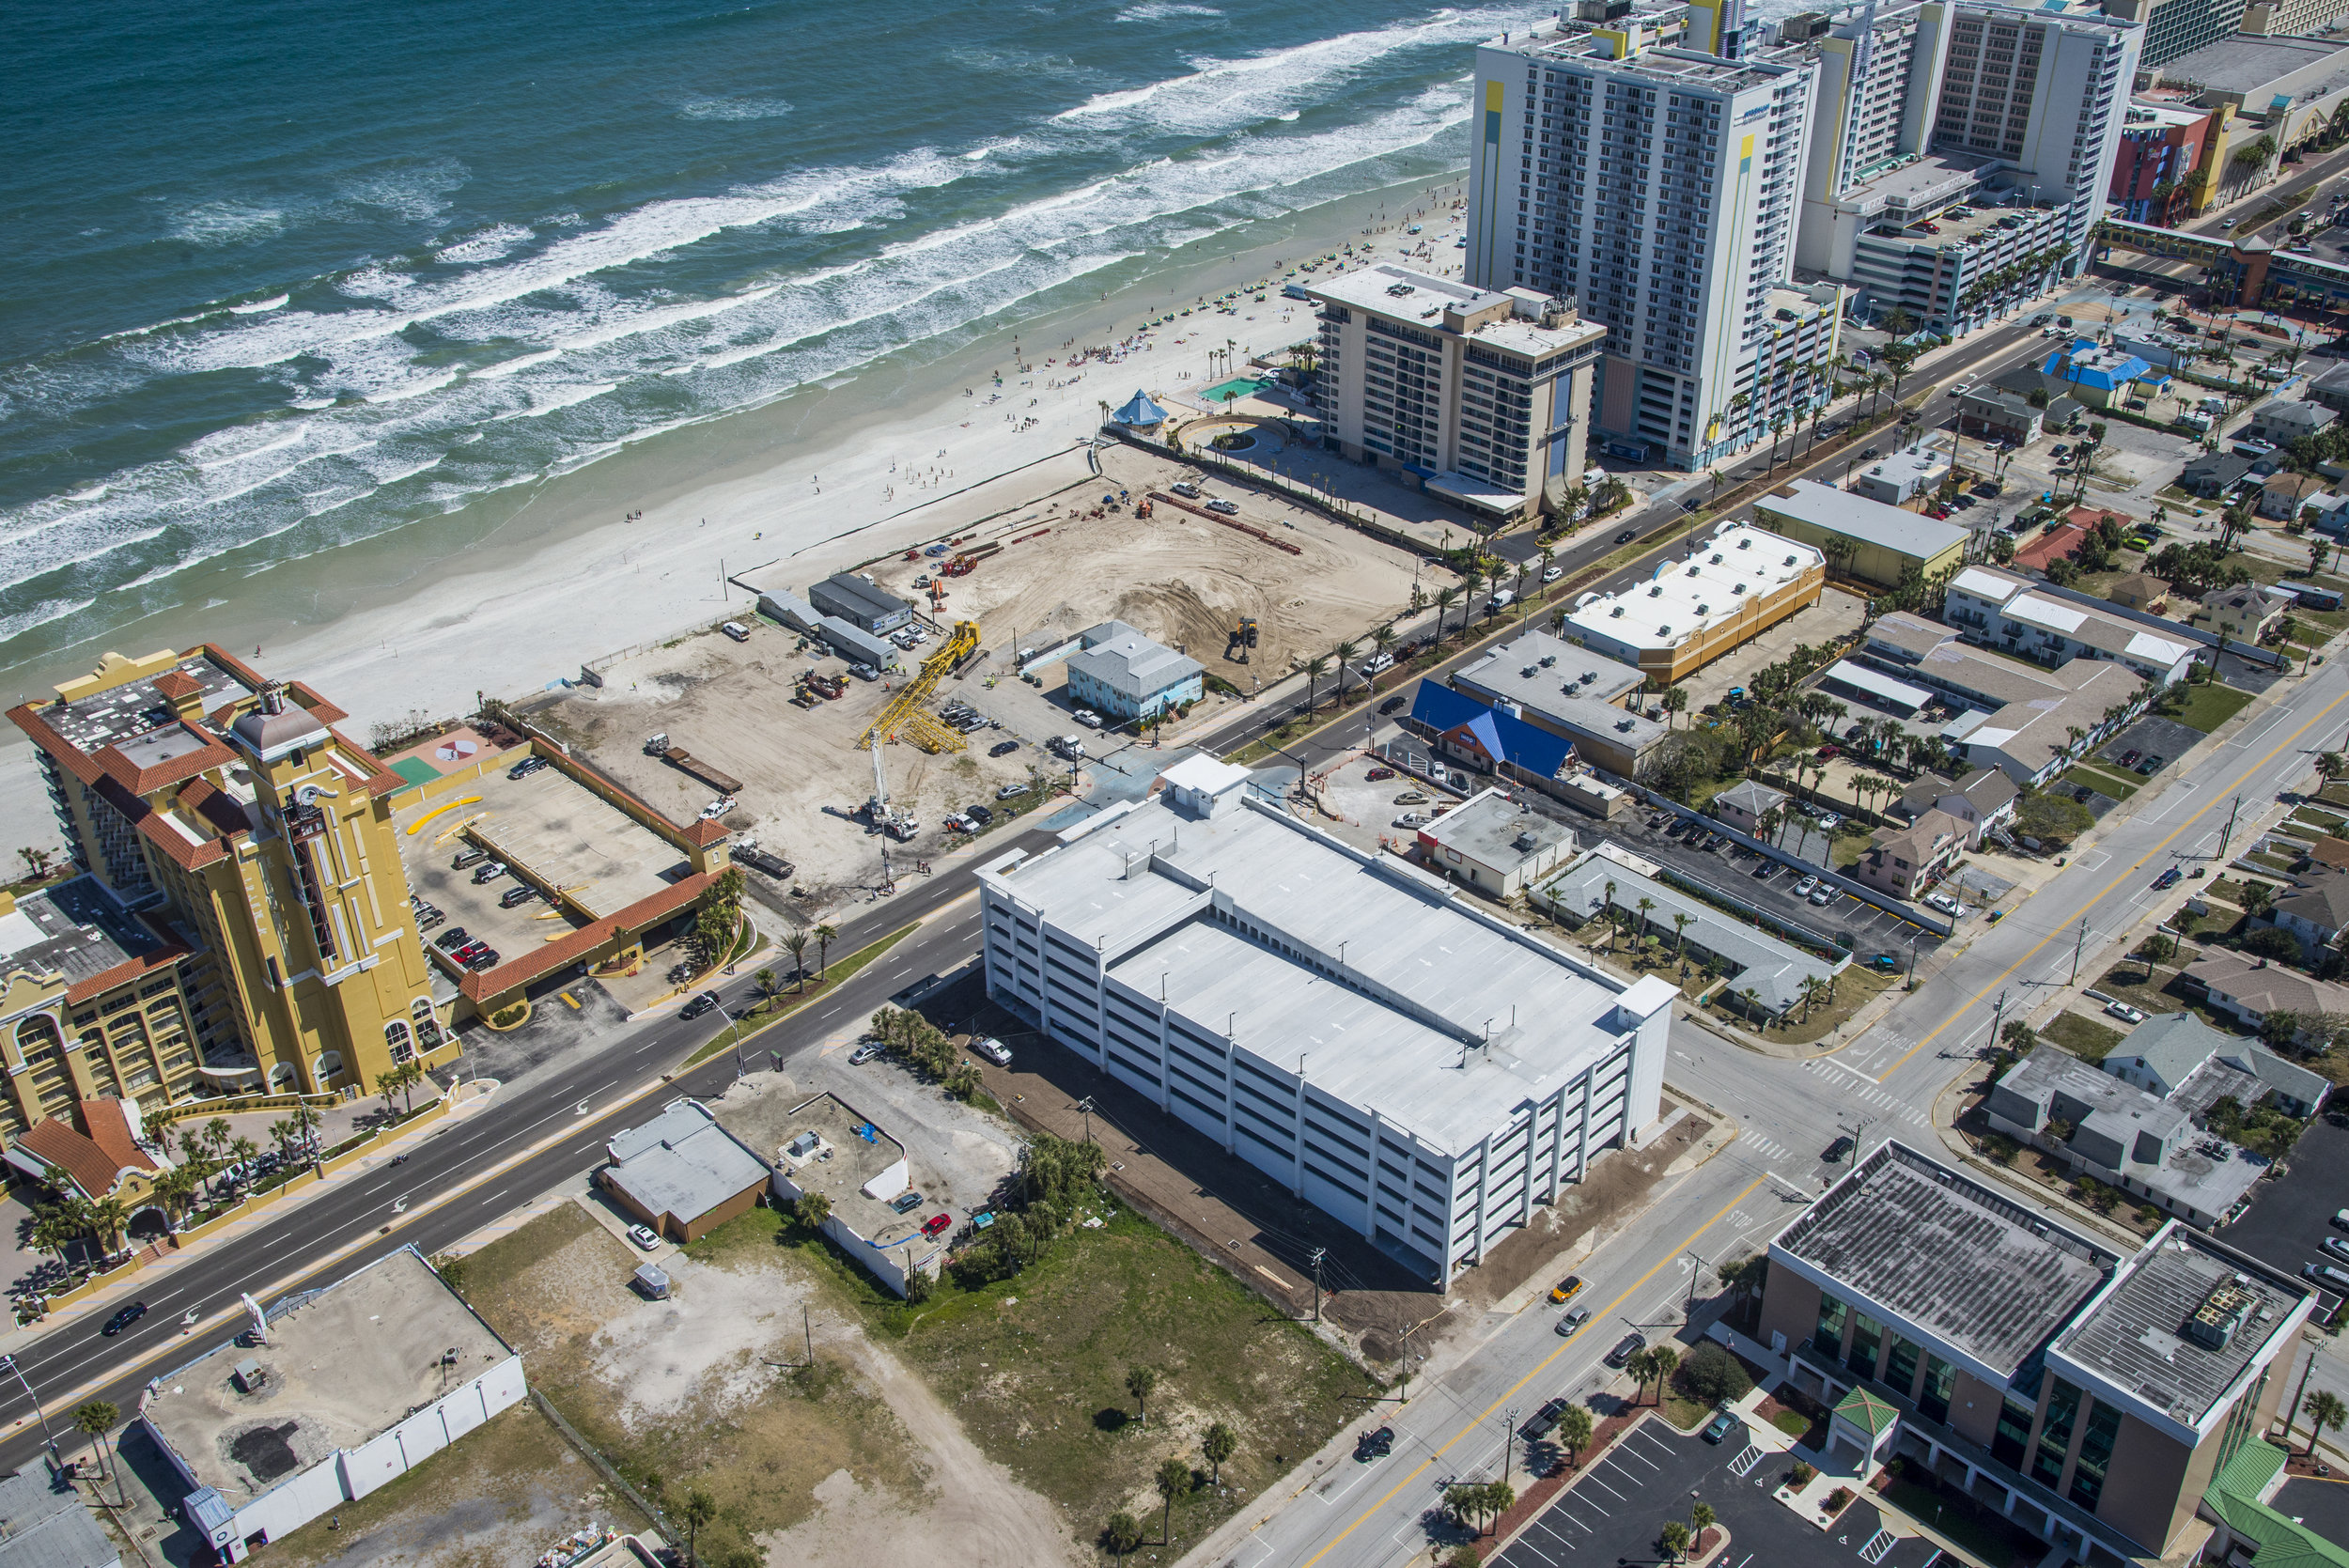 Daytona Beach Convention Center Hotel & Condos 3-20-17 03.jpg